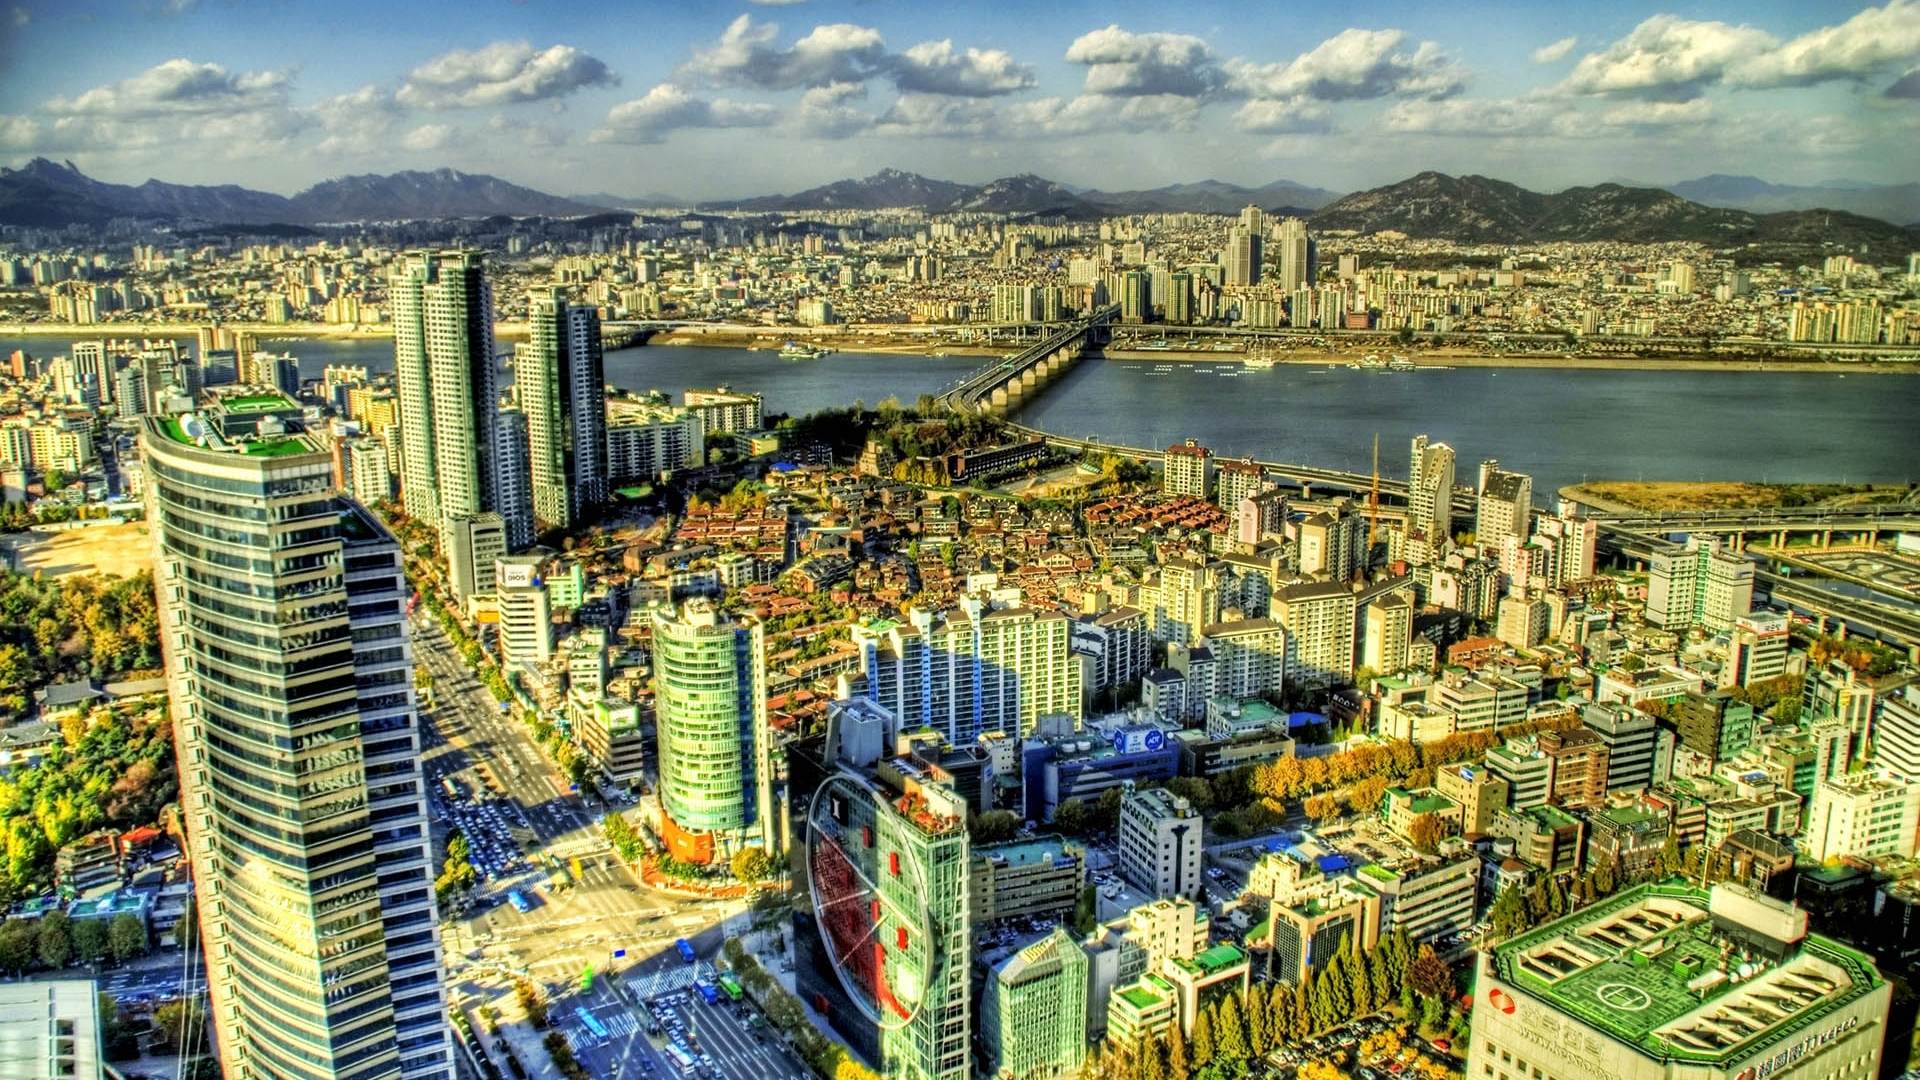 Download Wallpaper 1920x1080 South Korea Skyscrapers Buildings View From Above Hdr Full HD 1080p Background